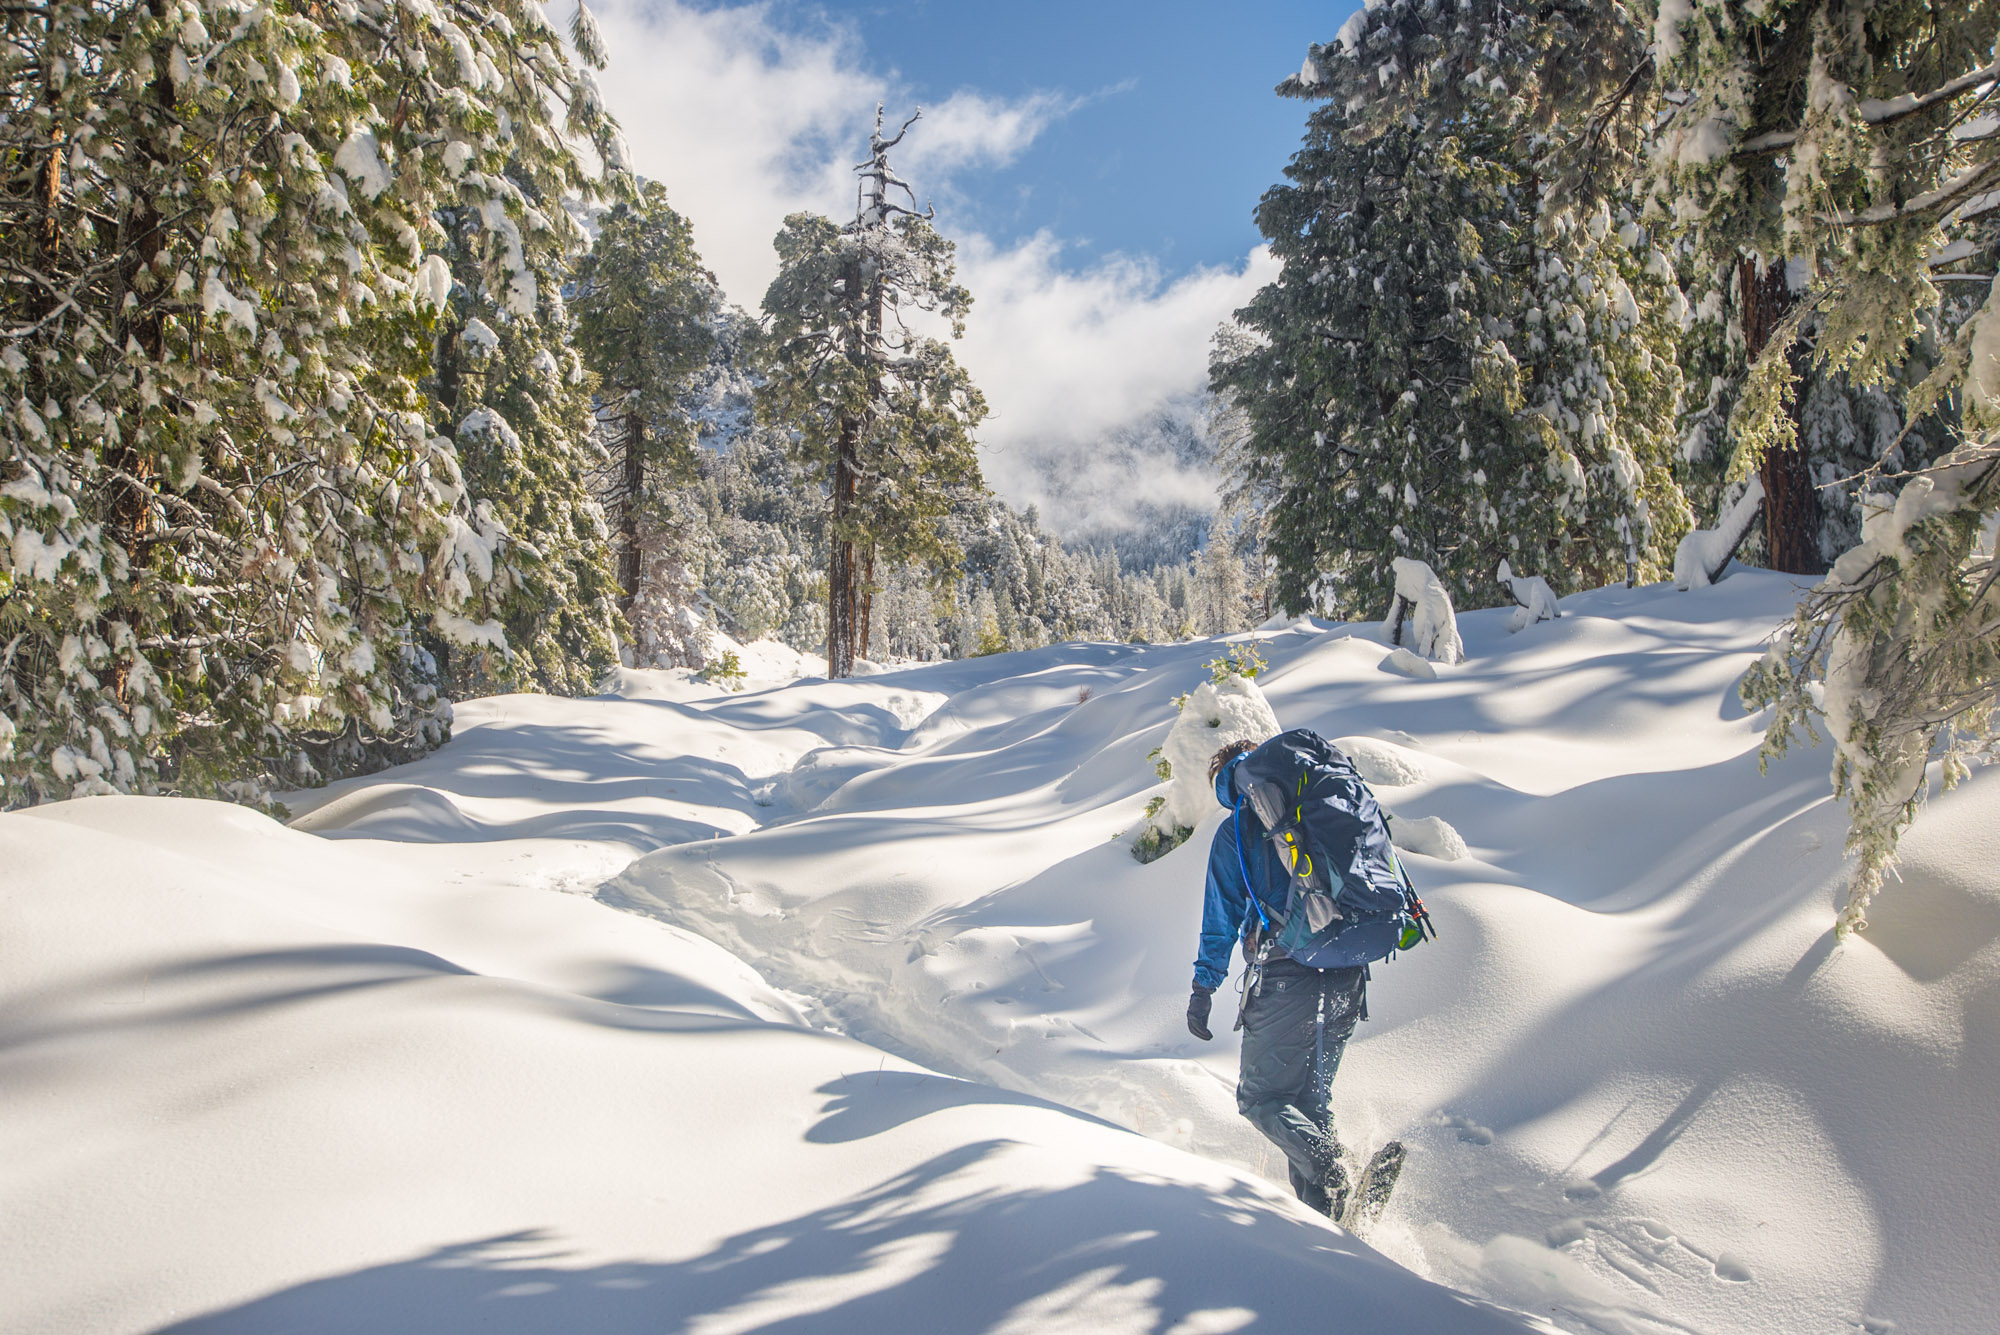 Trudging through 2' of freshly fallen snow on our way up to San Gorgonio Peak